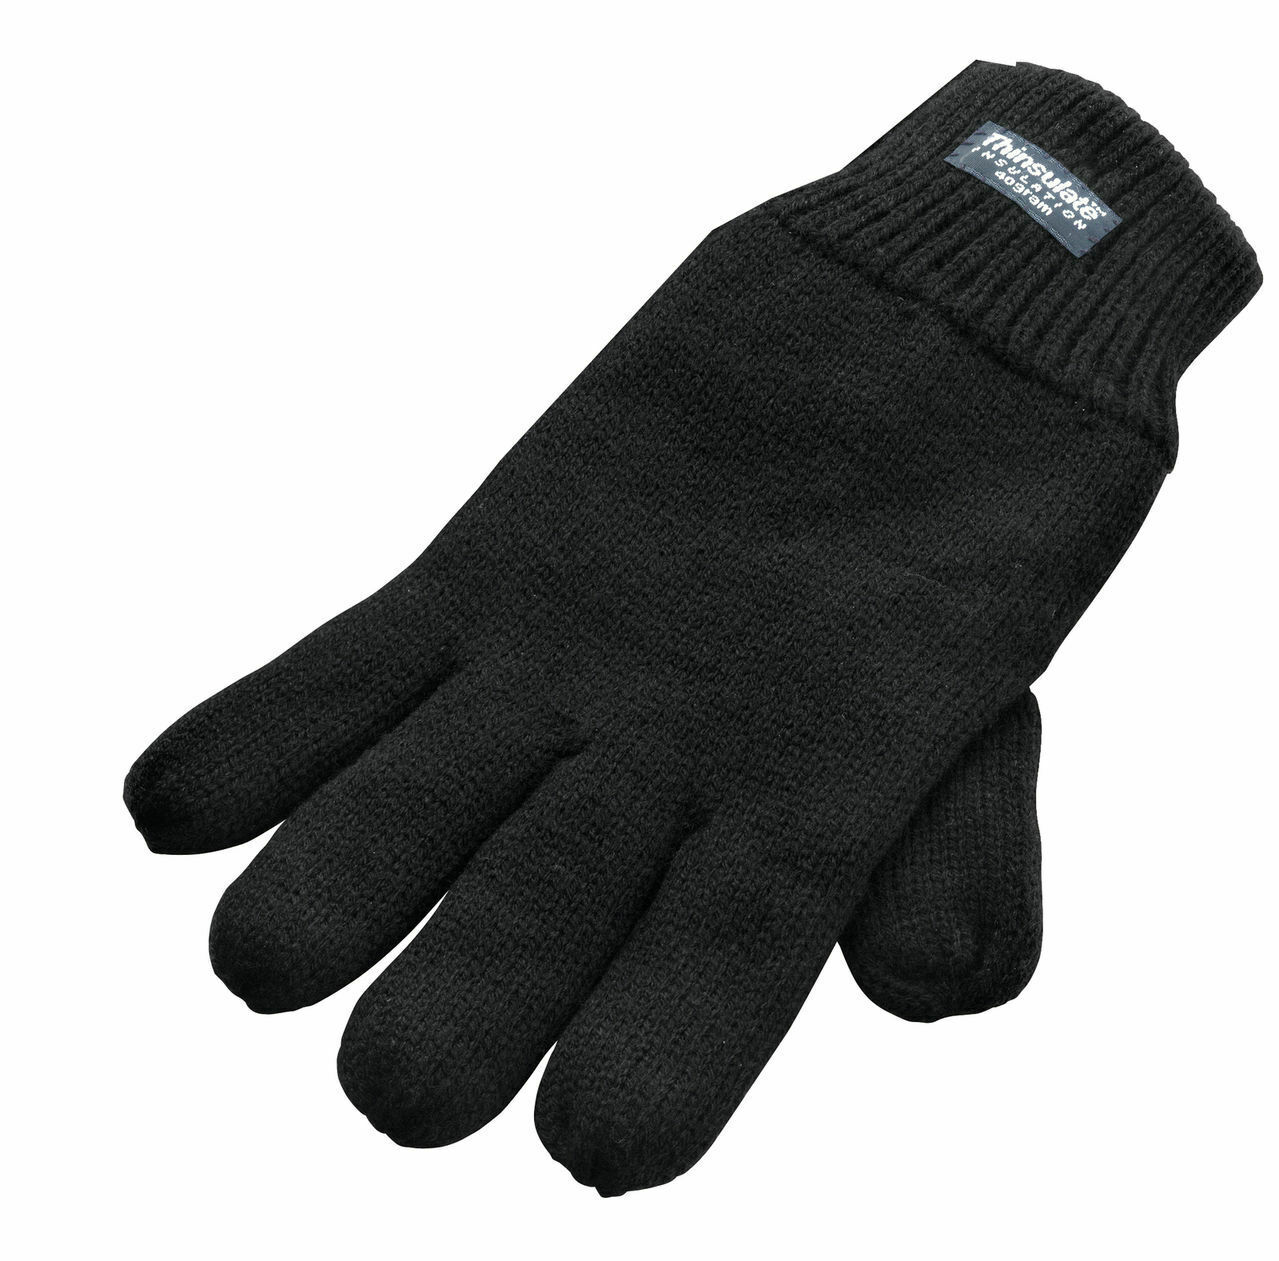 Result Thinsulate Gloves Soft Feel Workwear Winter Sports Glove S-2XL UK